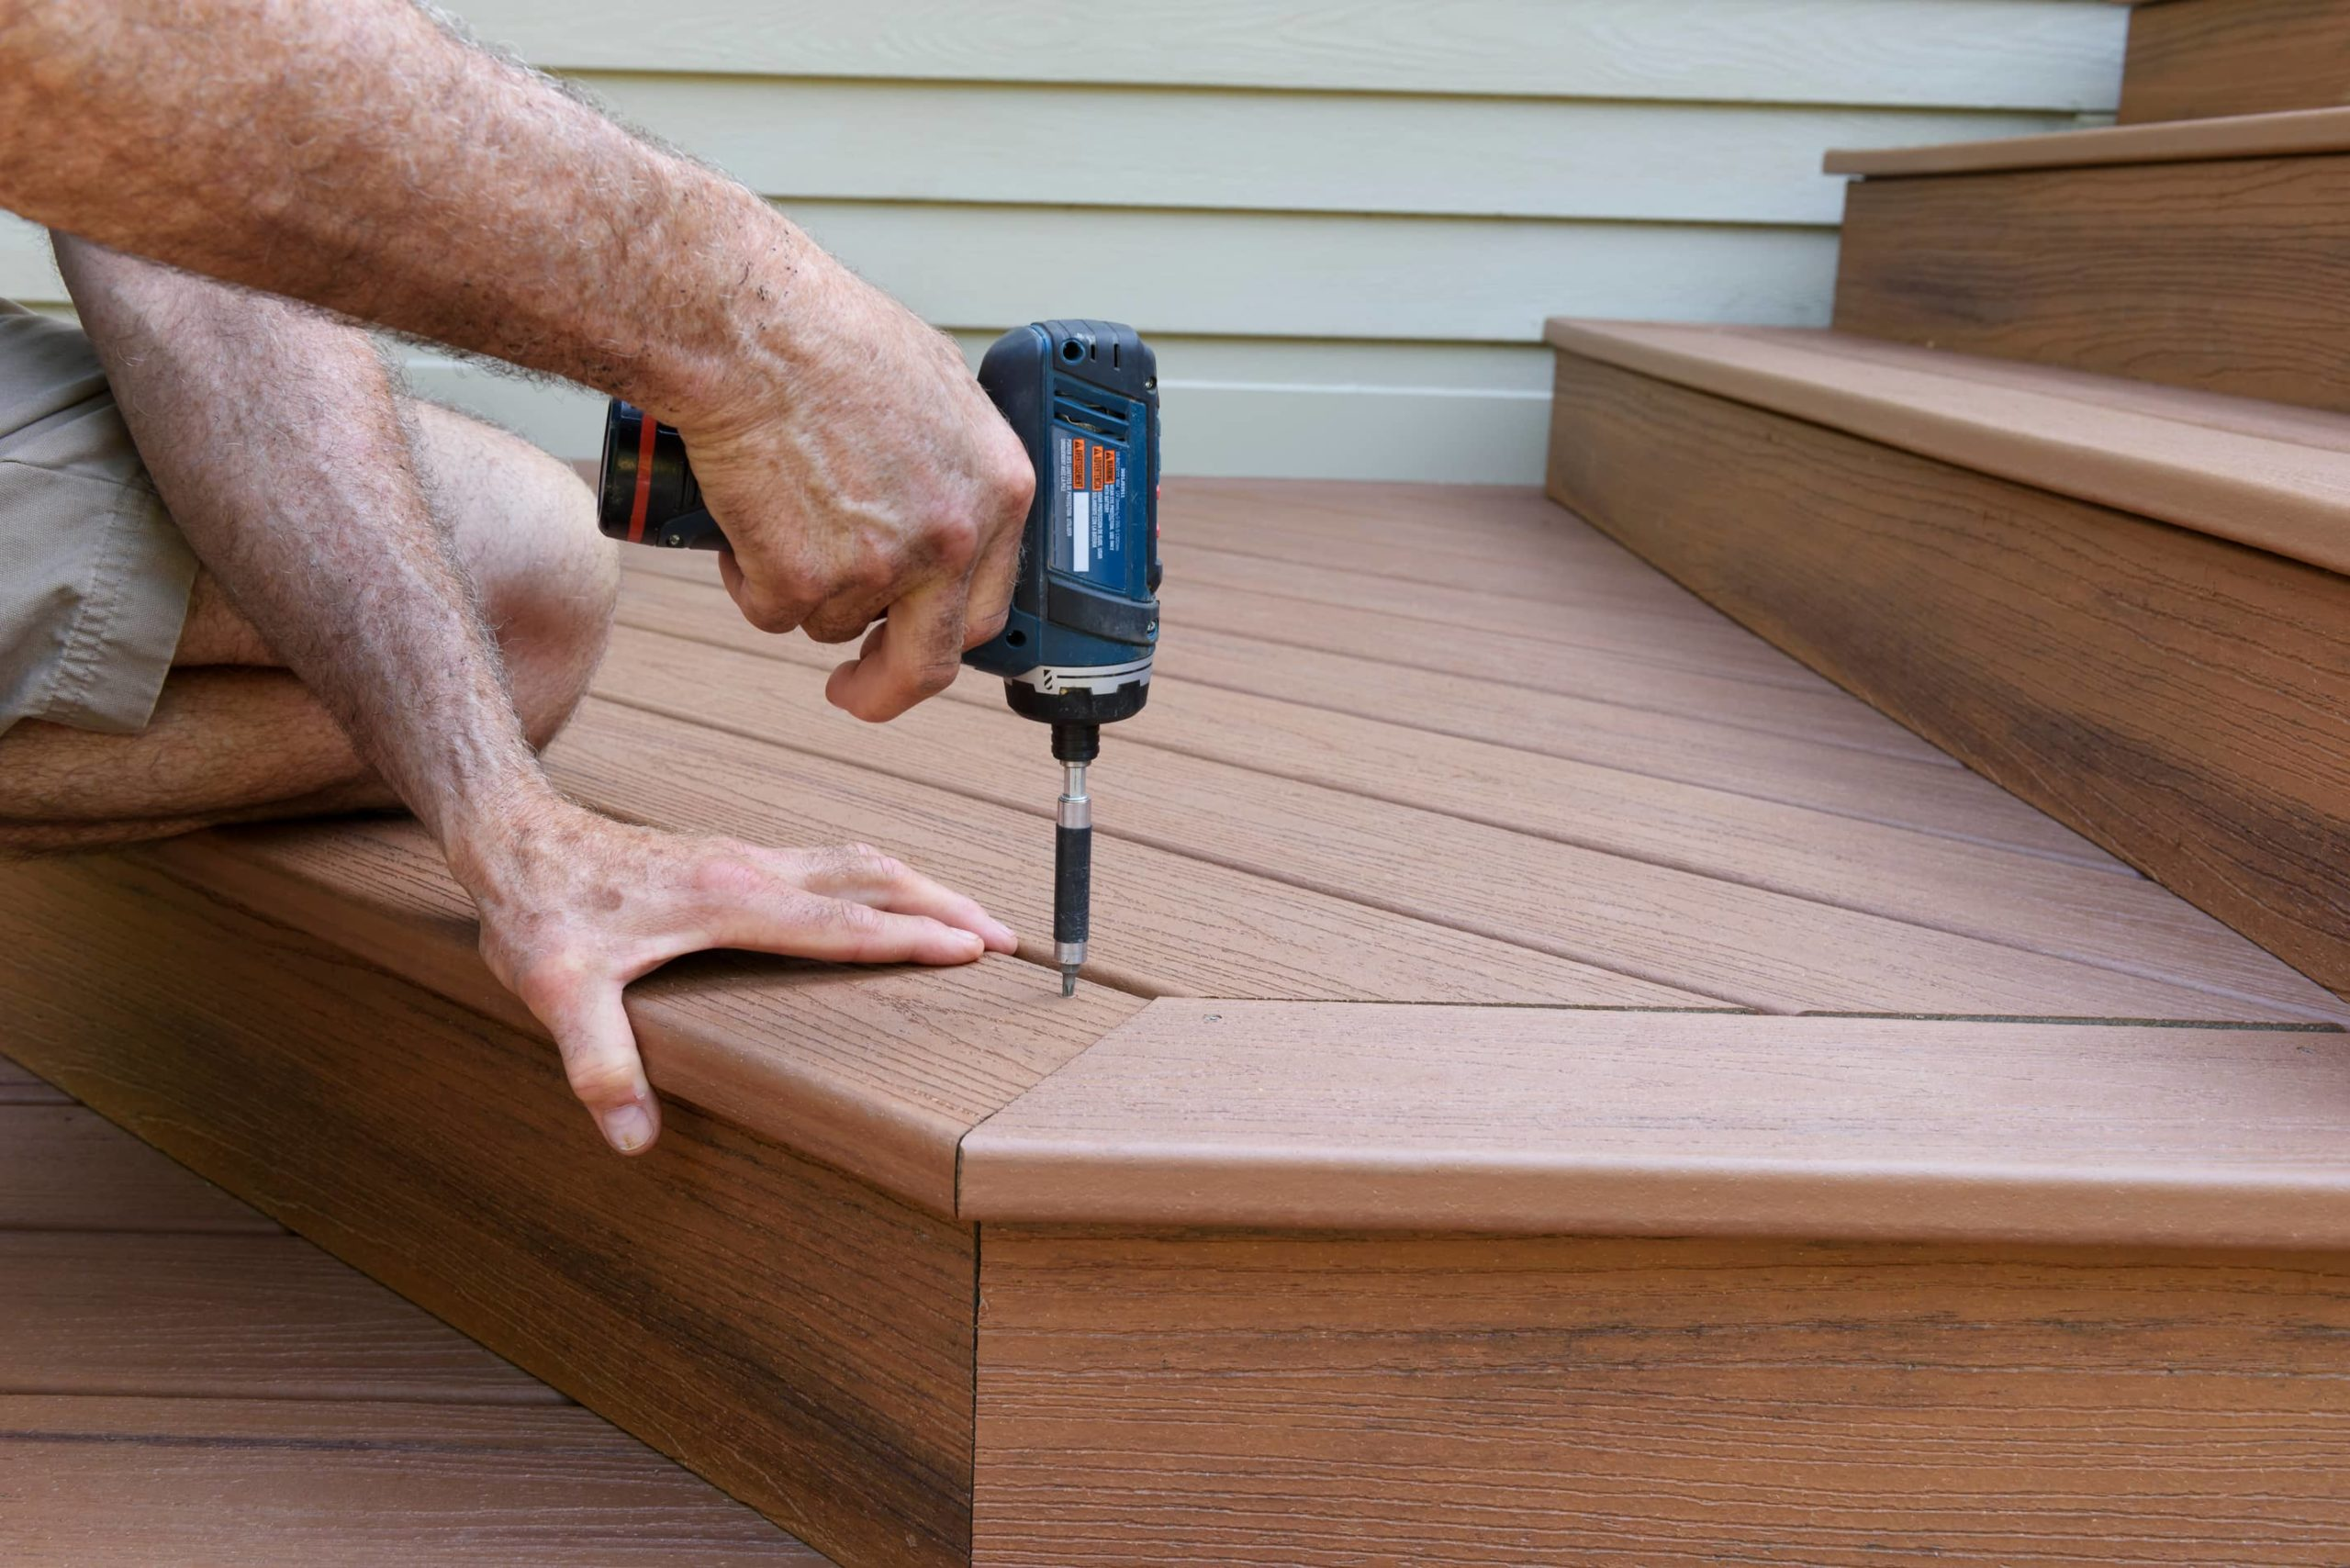 This image shows a man using a power drill to install a new deck for a home.